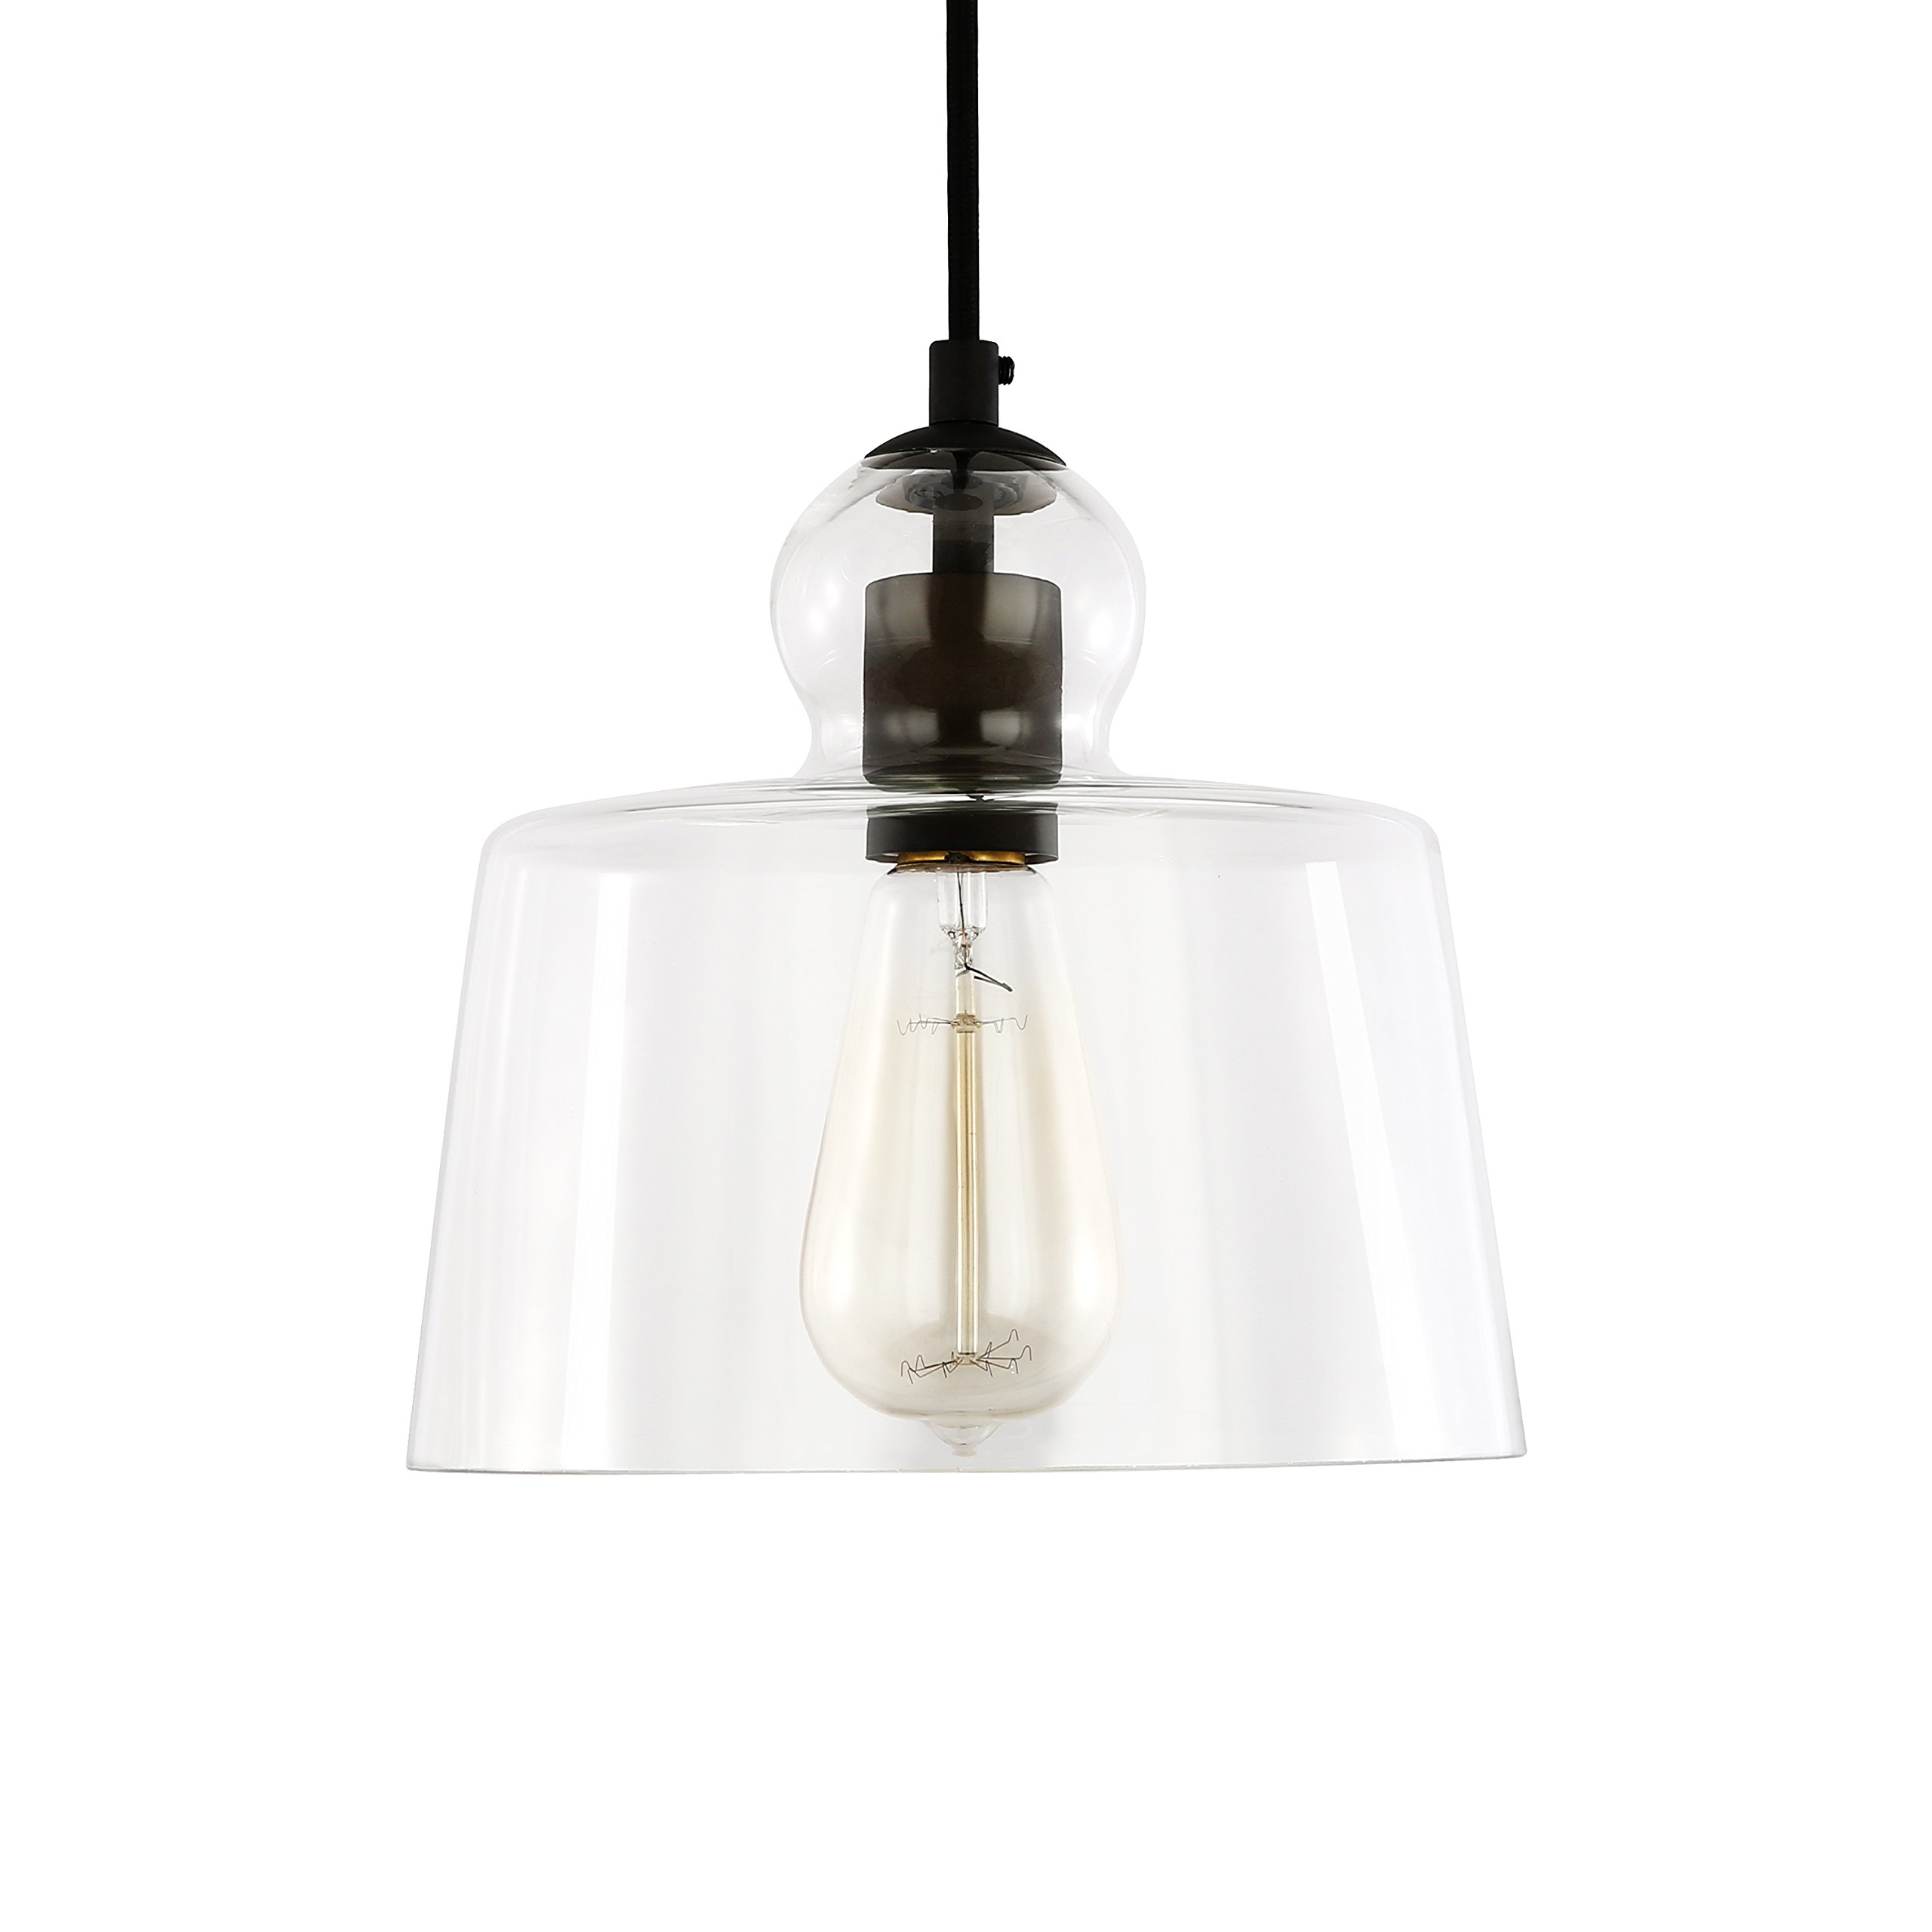 Light Society Tripoli Pendant Light, Oil Rubbed Bronze with Handblown Clear Glass Shade, Vintage Industrial Modern Lighting Fixture (LS-C247-ORB)